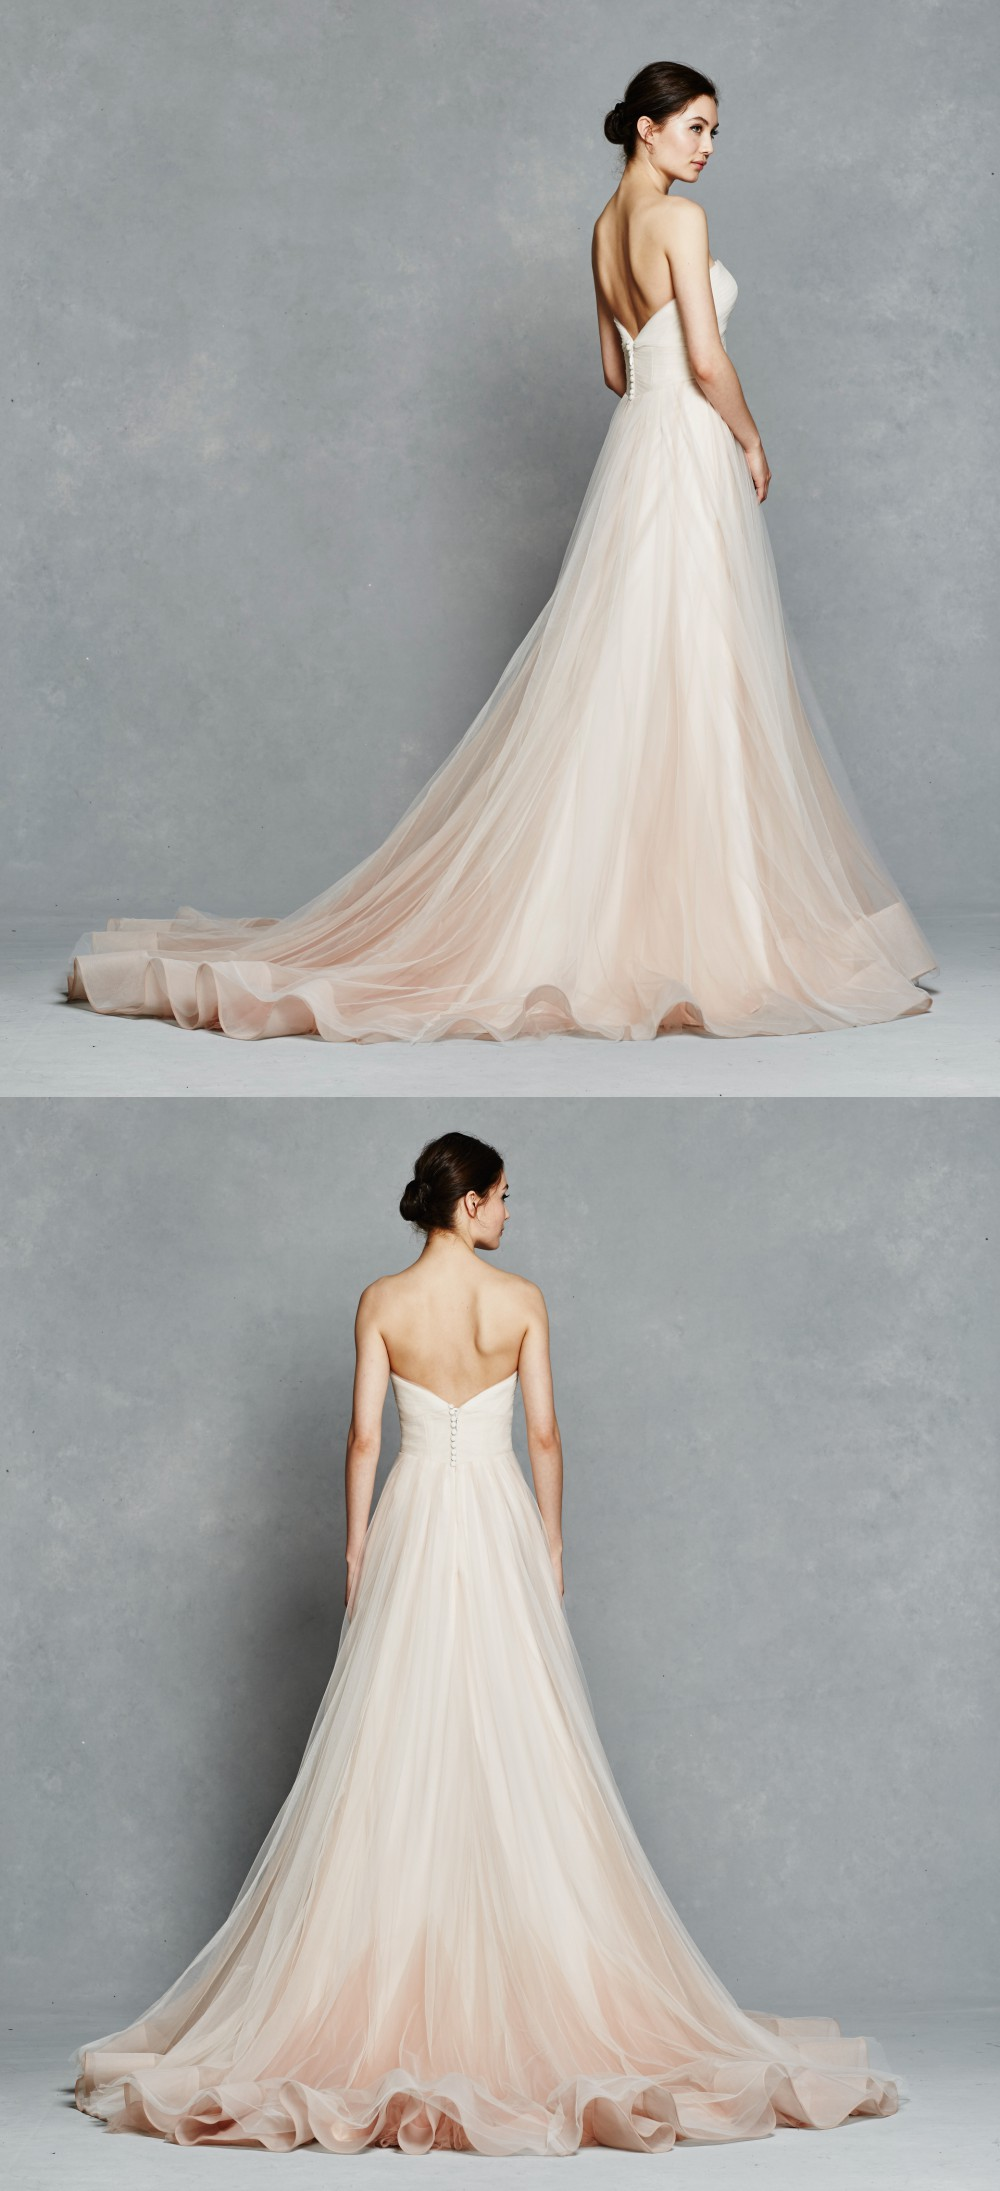 Blush wedding dress | Florence by Kelly Faetanini